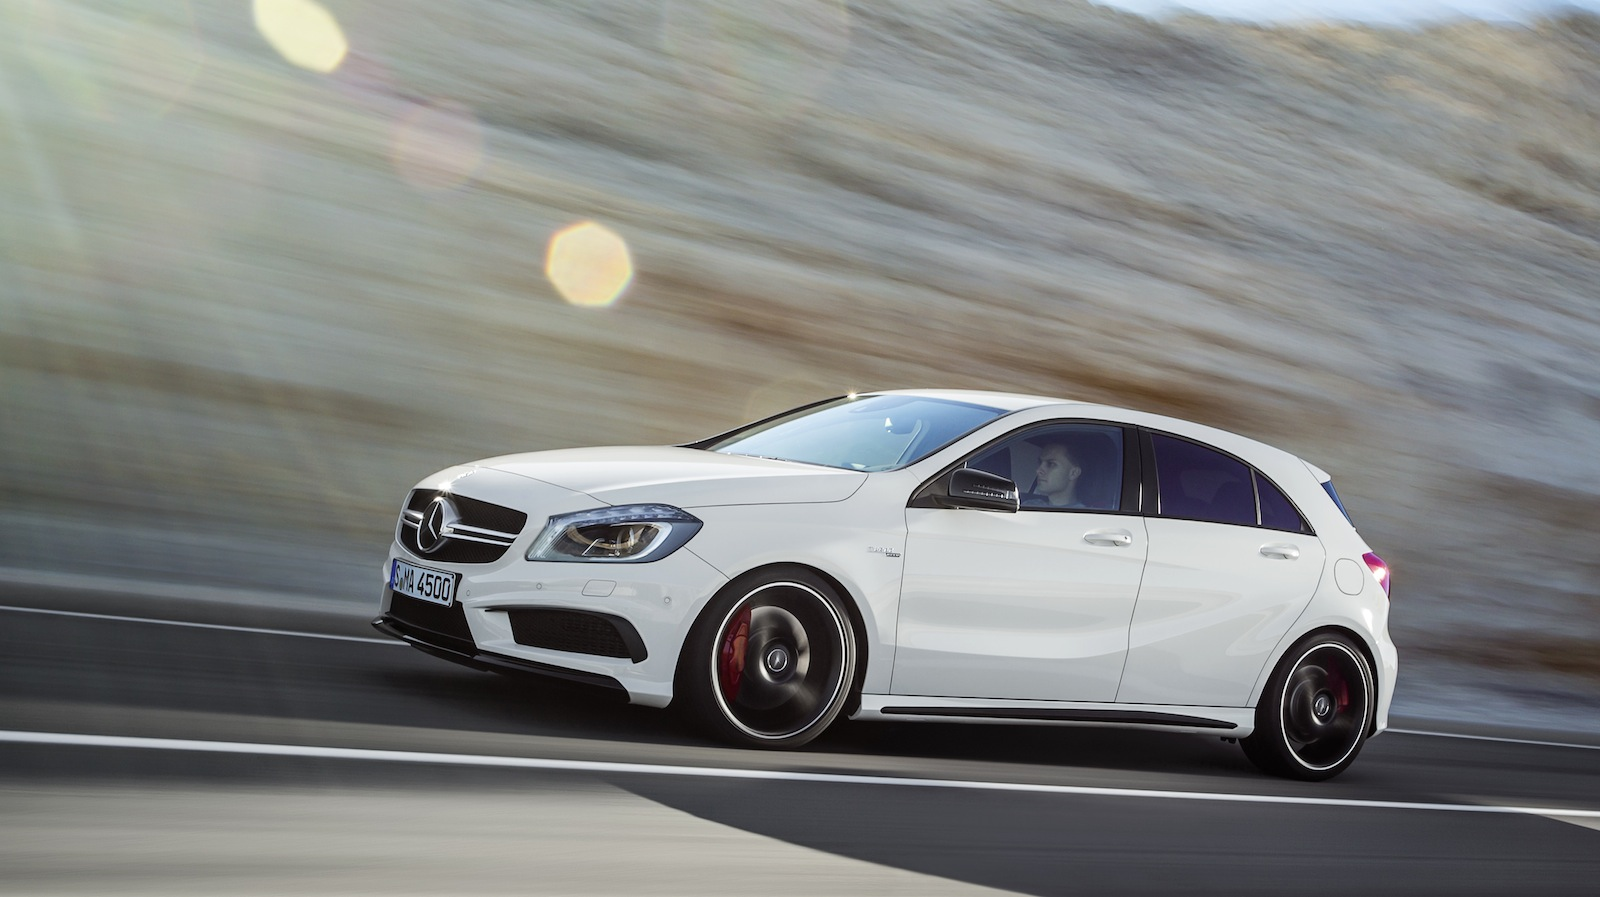 mercedes benz a45 amg 265kw hot hatch unleashed photos. Black Bedroom Furniture Sets. Home Design Ideas